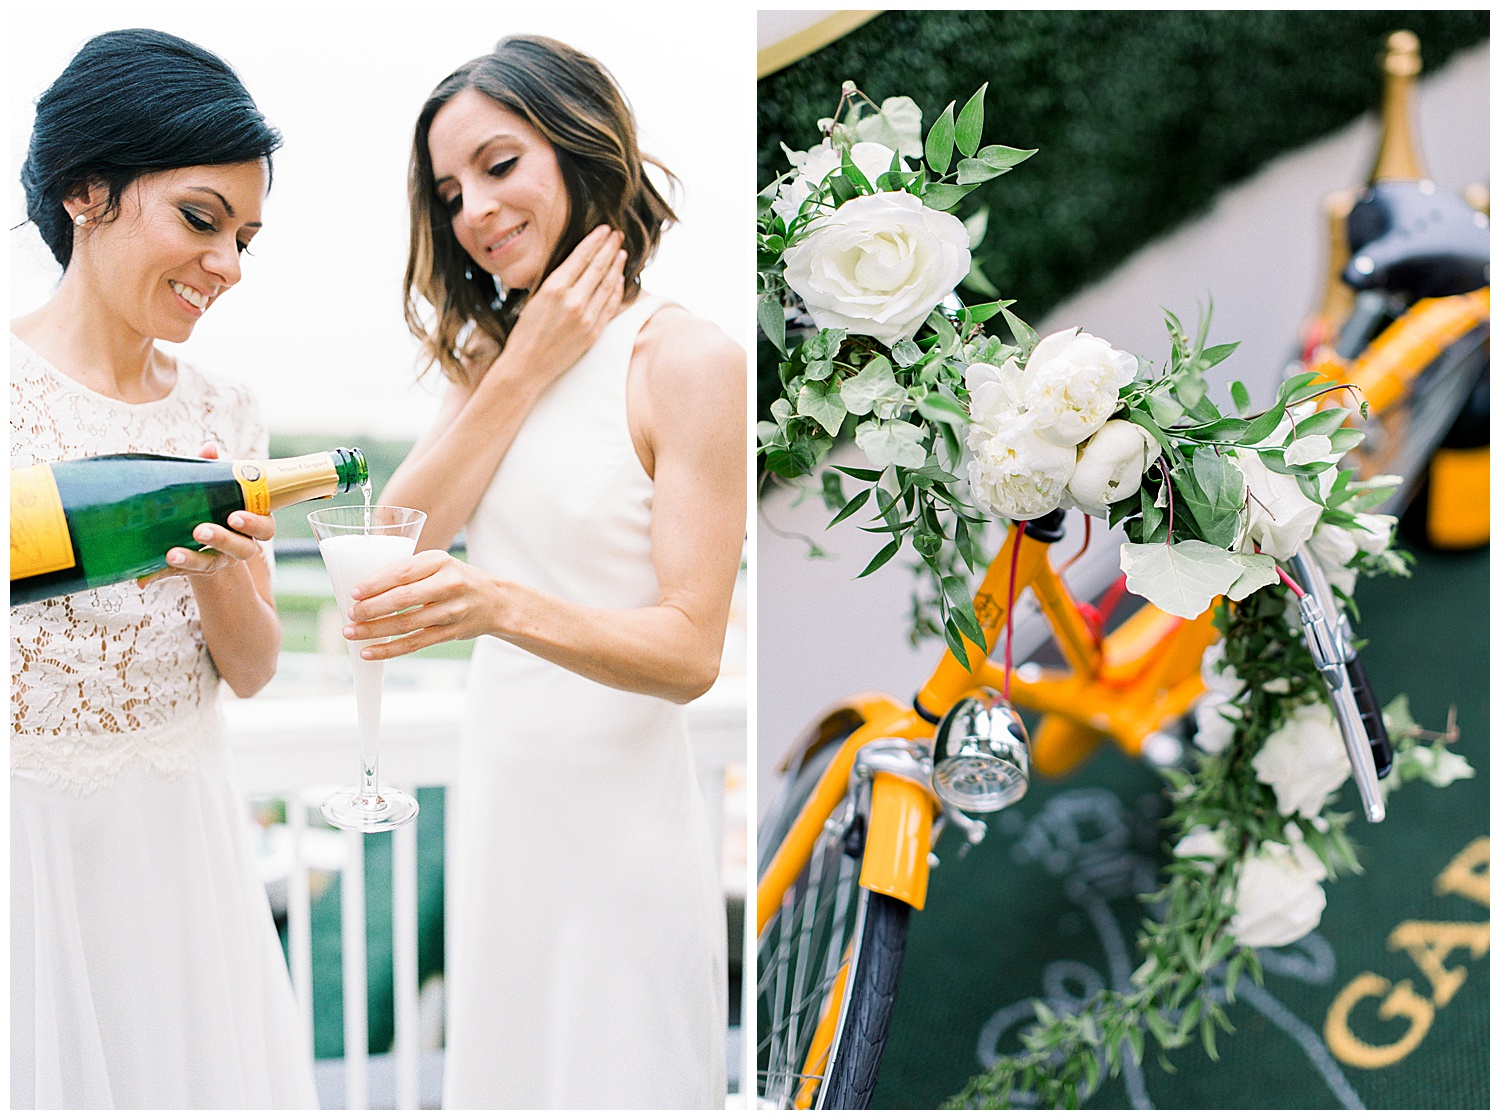 veuve clicquot wedding